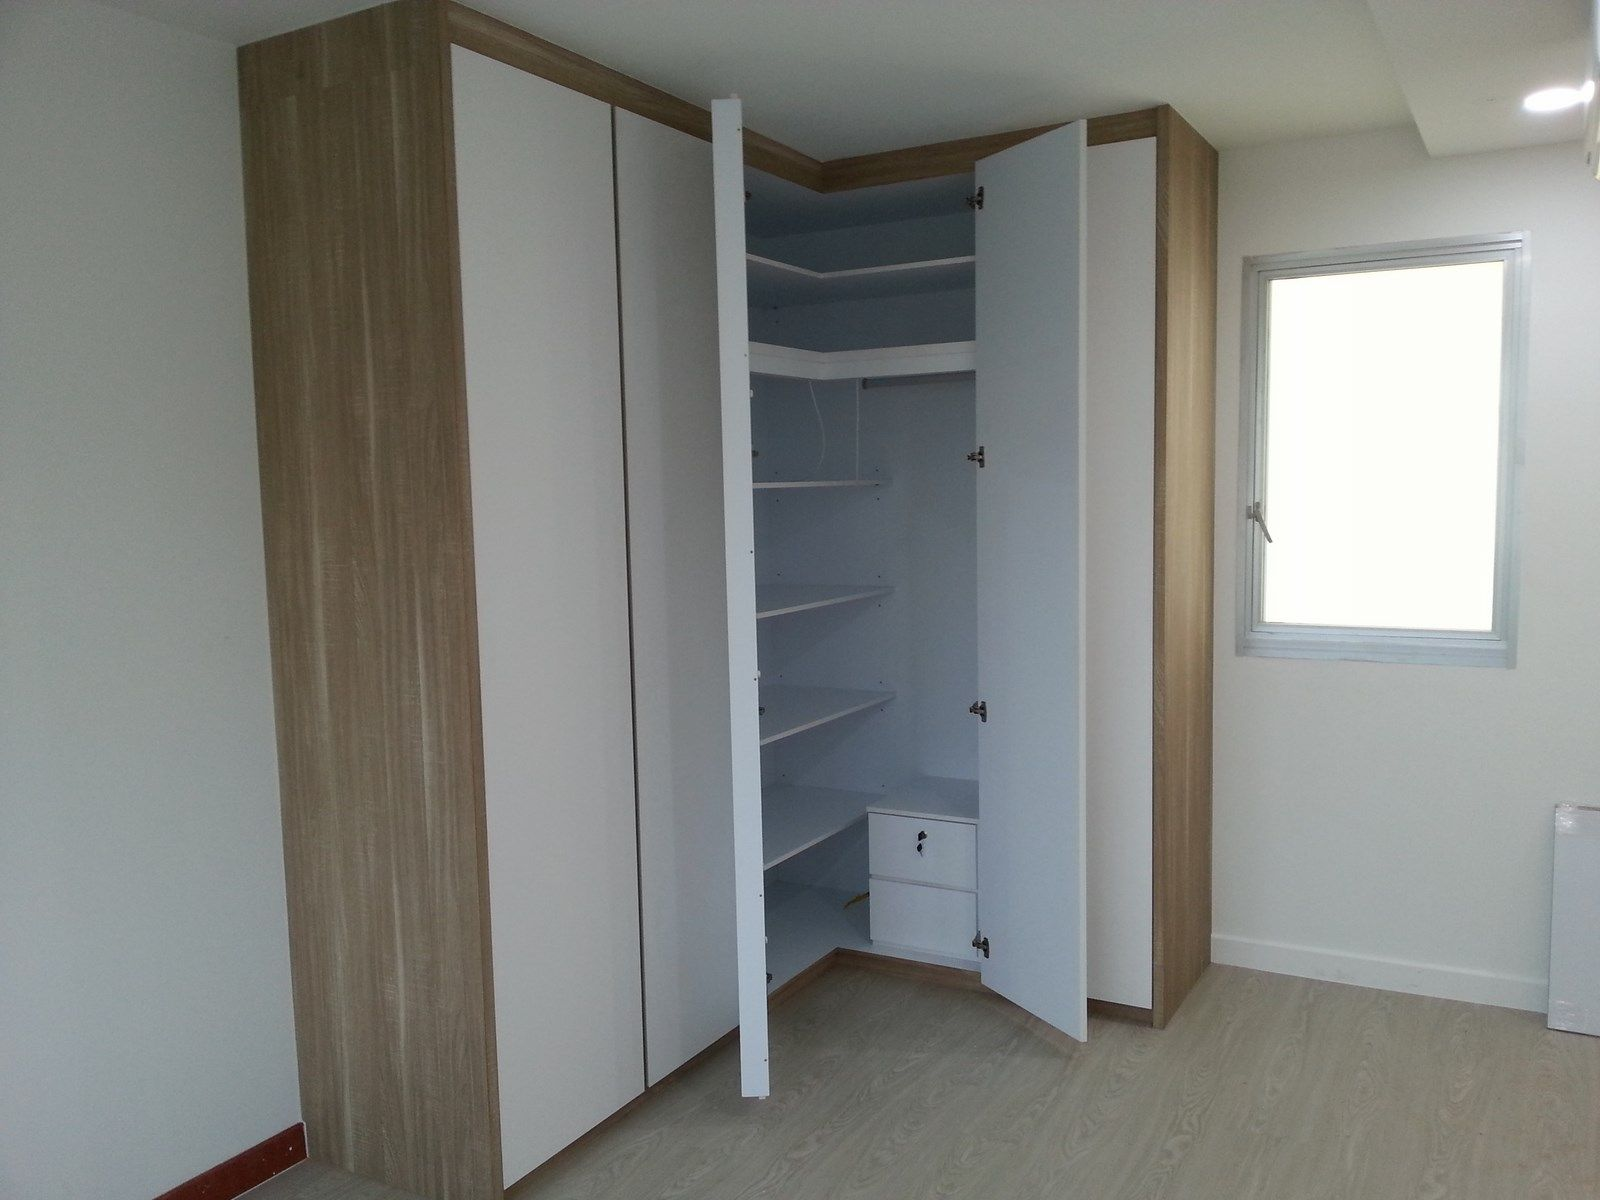 I Like The Finish Of Wardrobe And L Shape Aircon Ledge Doesn T Look Too Bad Either